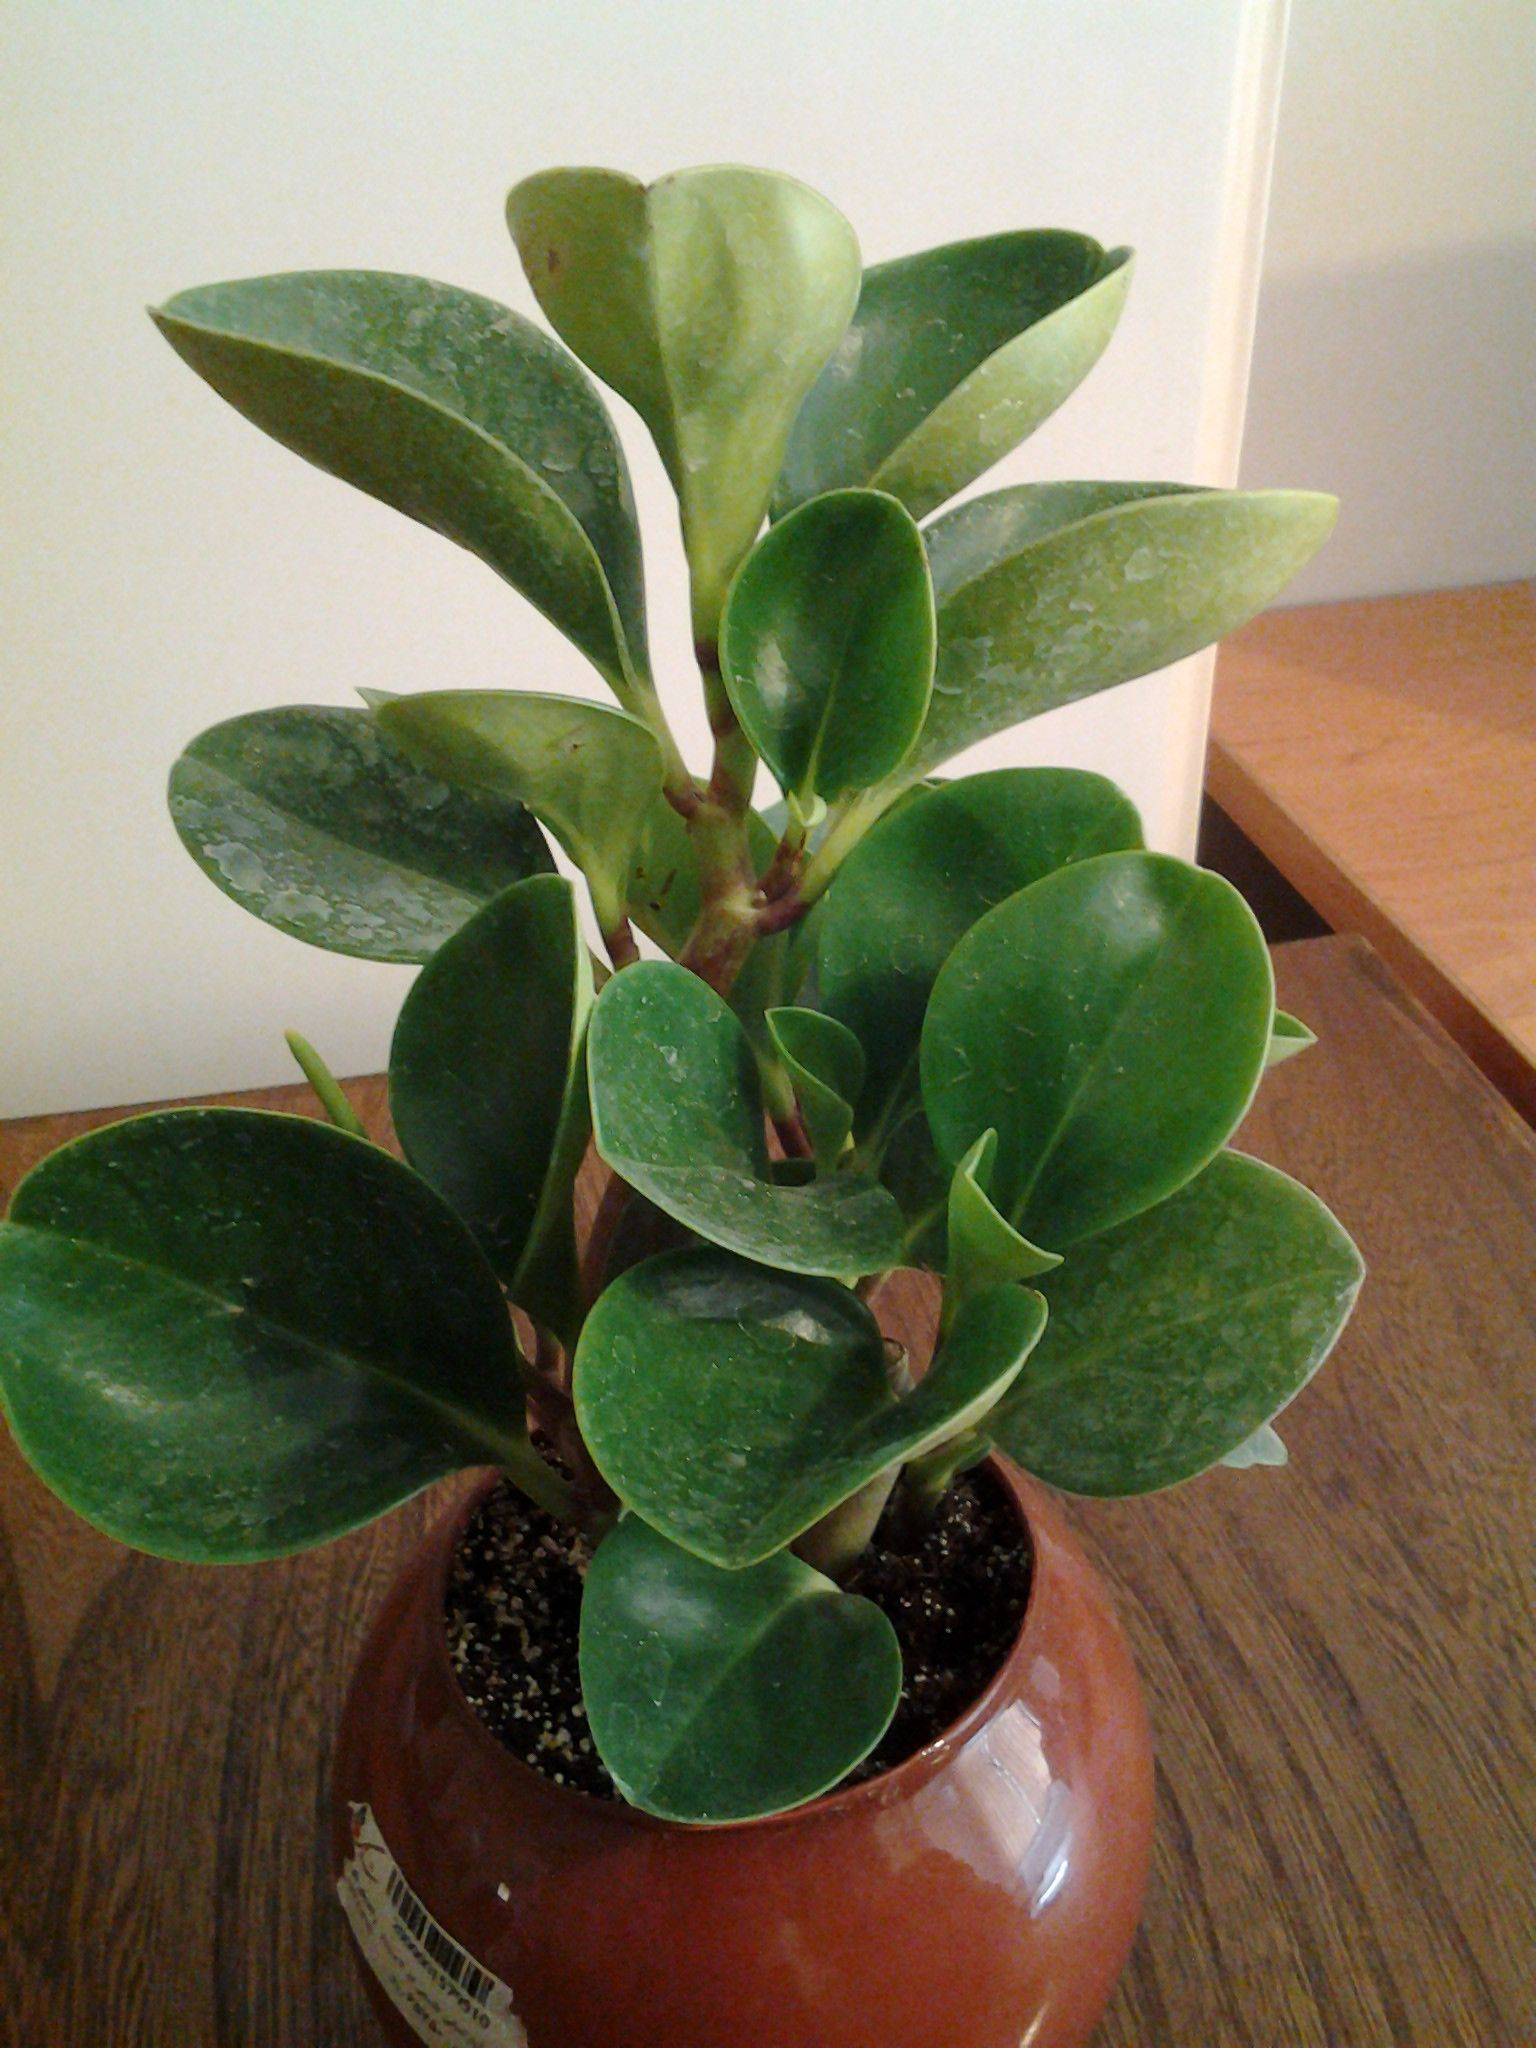 Peperomia If You Want A Small And Adorable Houseplant Then Is Perfect For It Only Grows To About Six Inches High Has Thick